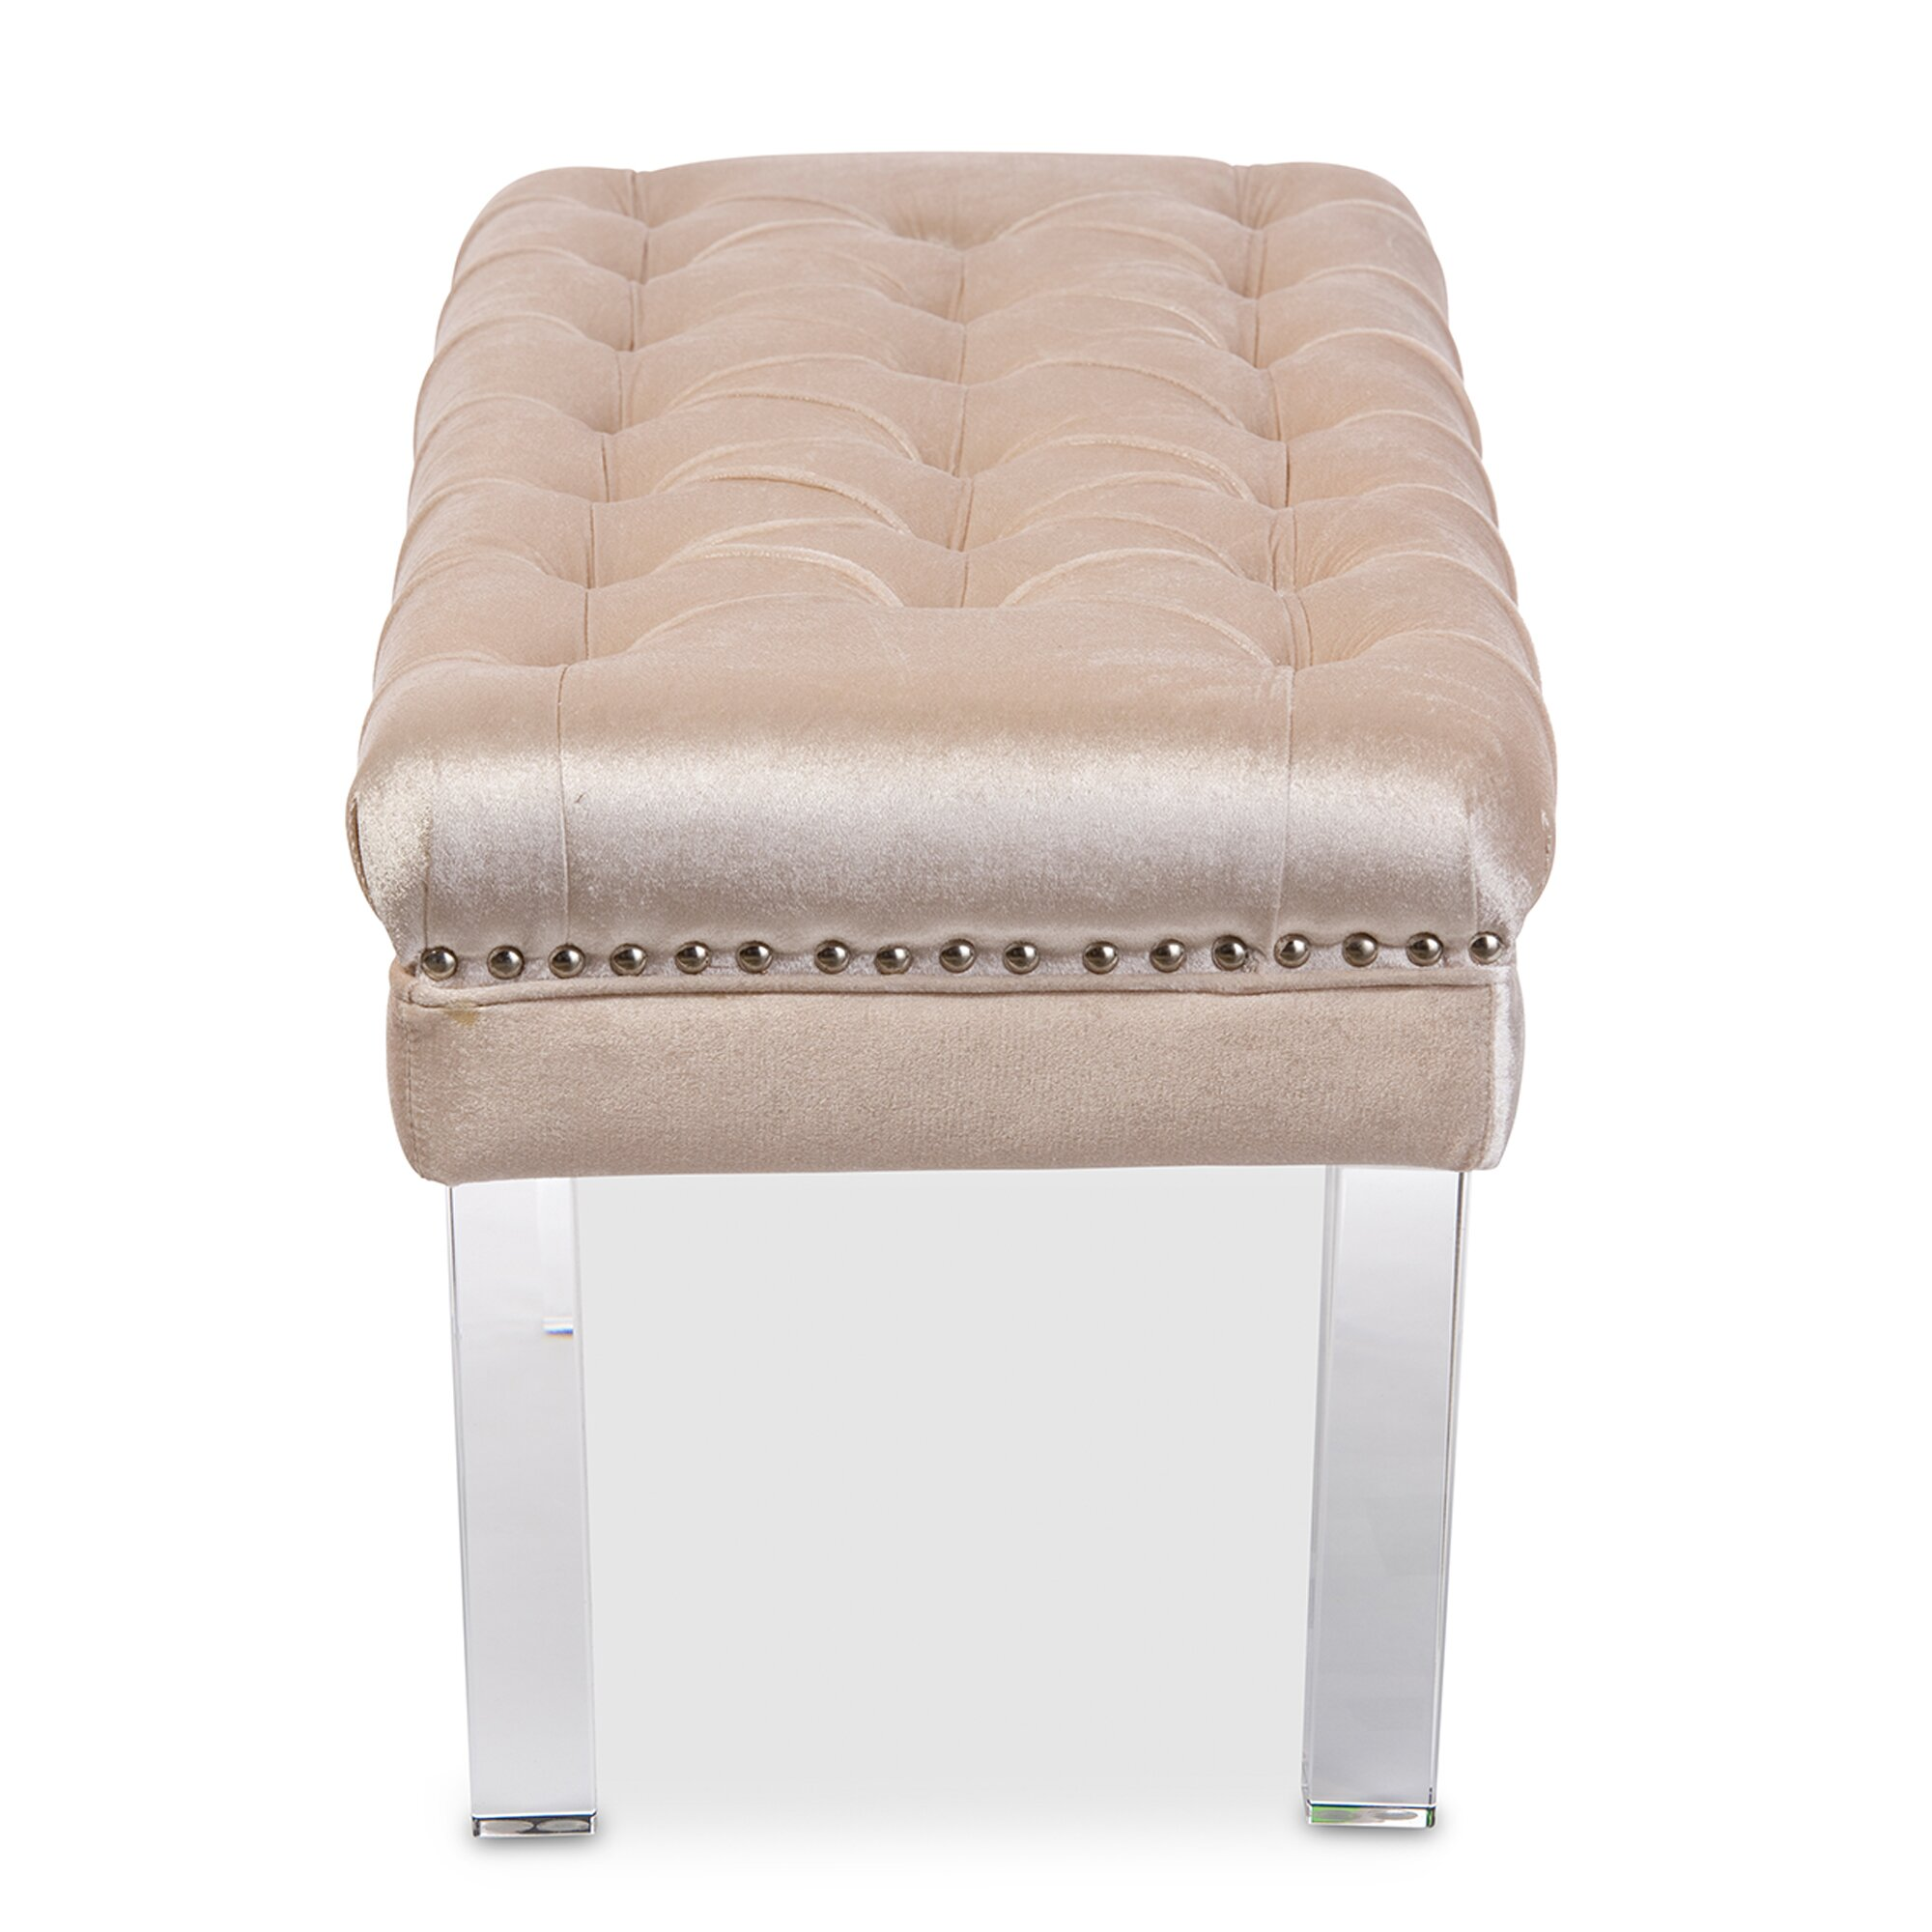 Upholstered Bench Beige: Wholesale Interiors Baxton Studio Upholstered Bench